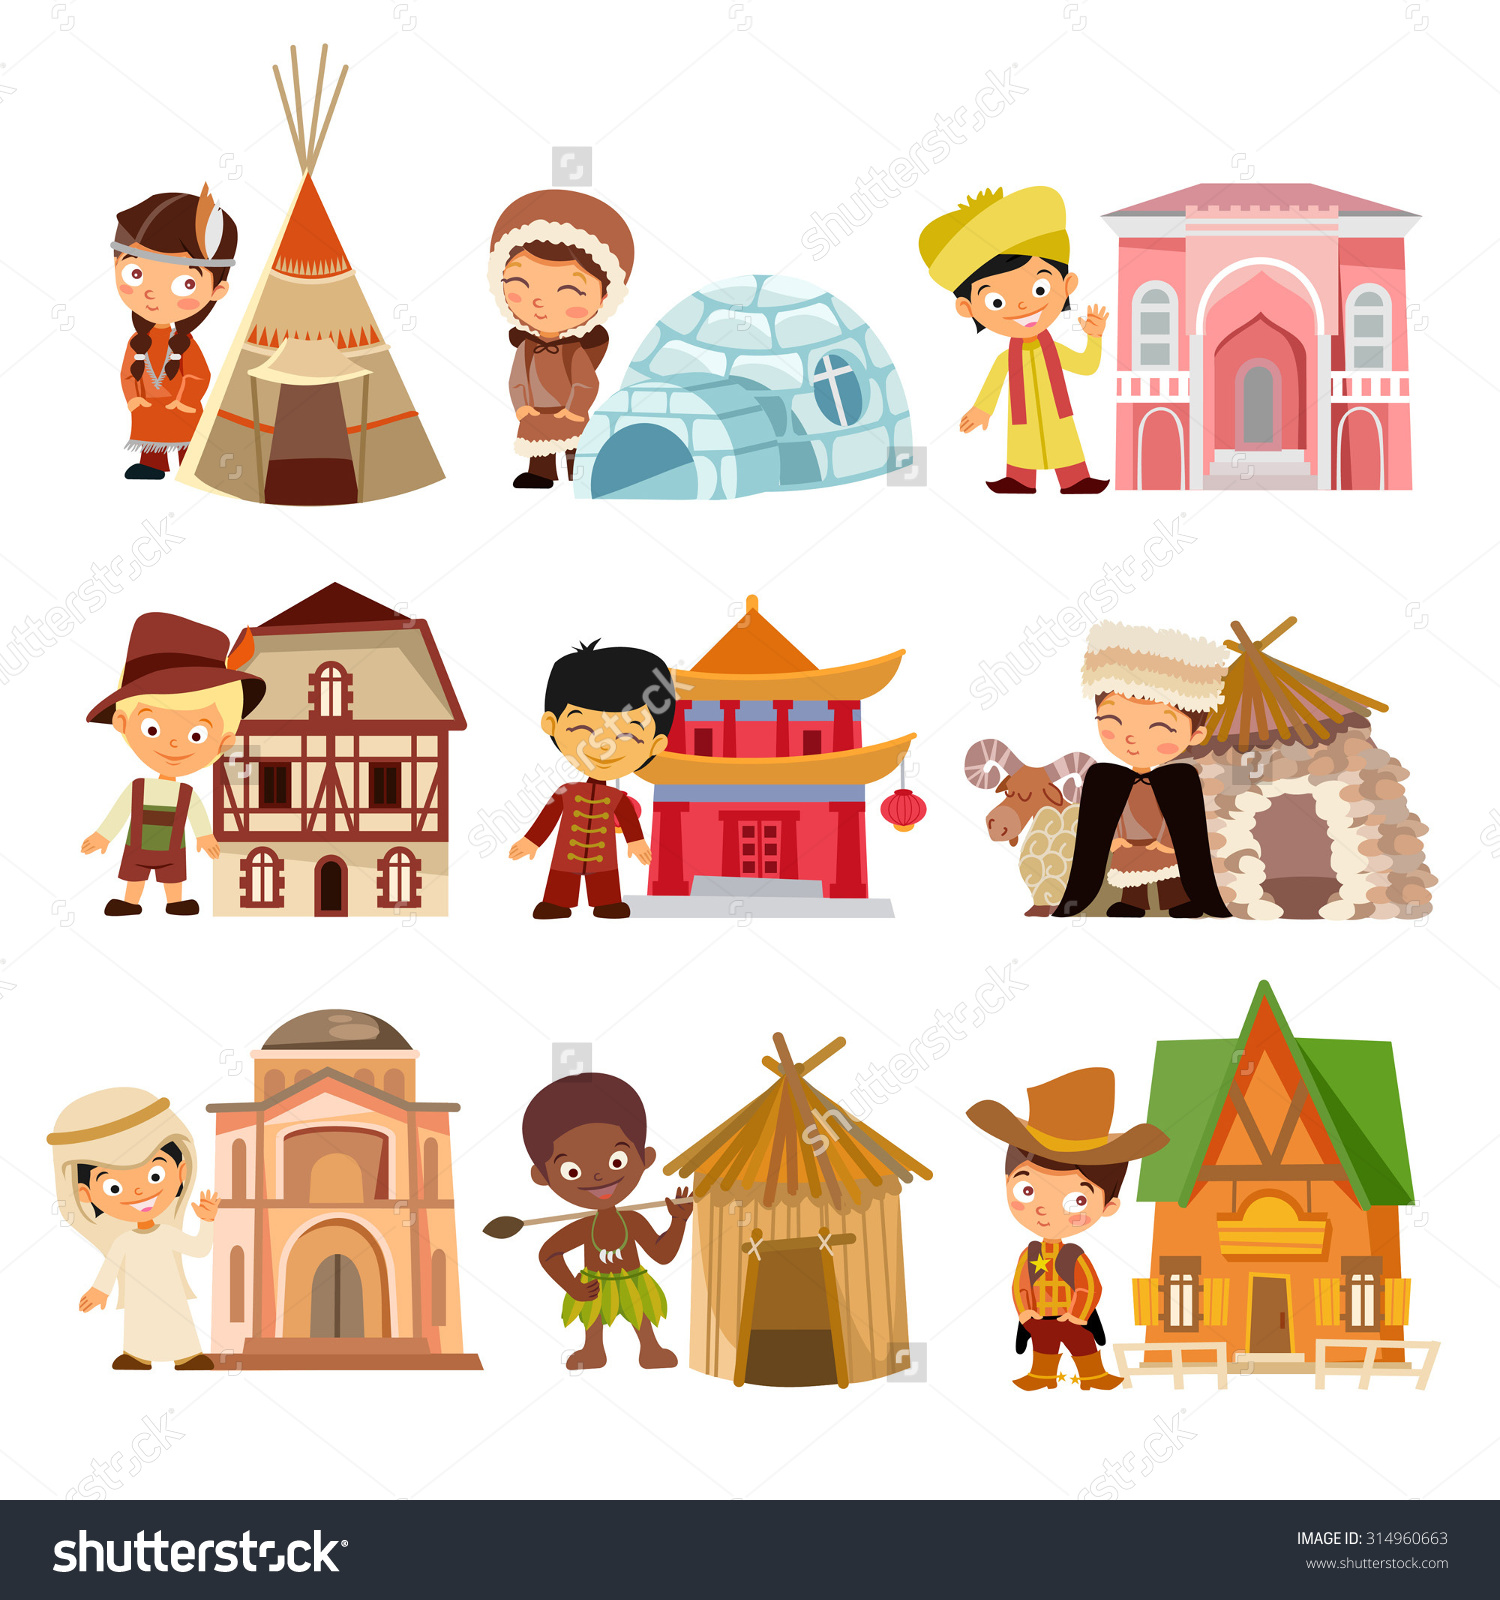 Traditional housing clipart - Clipground